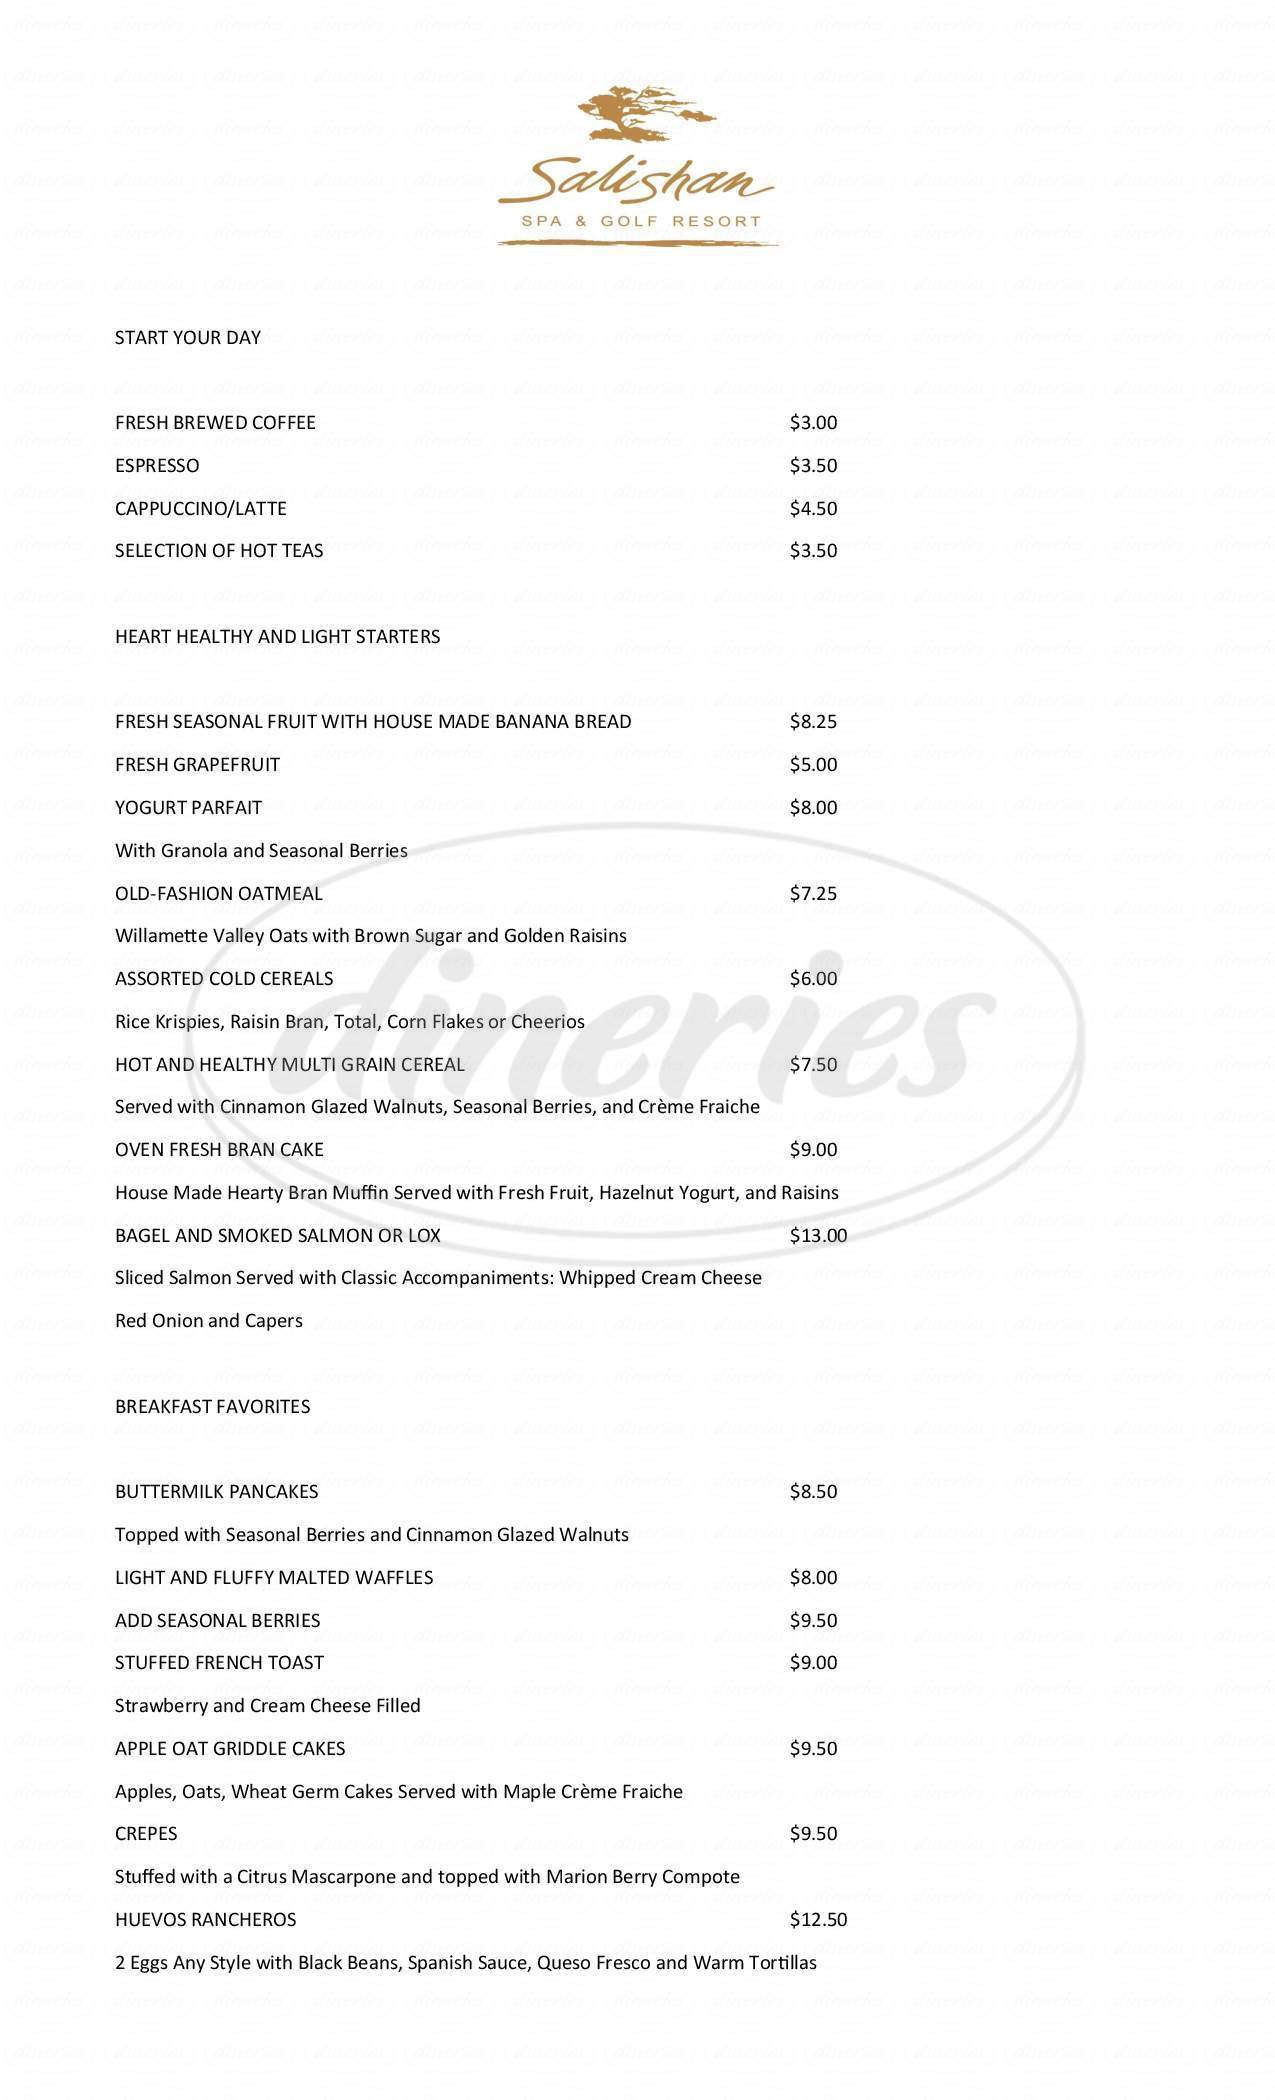 menu for Salishan Spa & Golf Resort